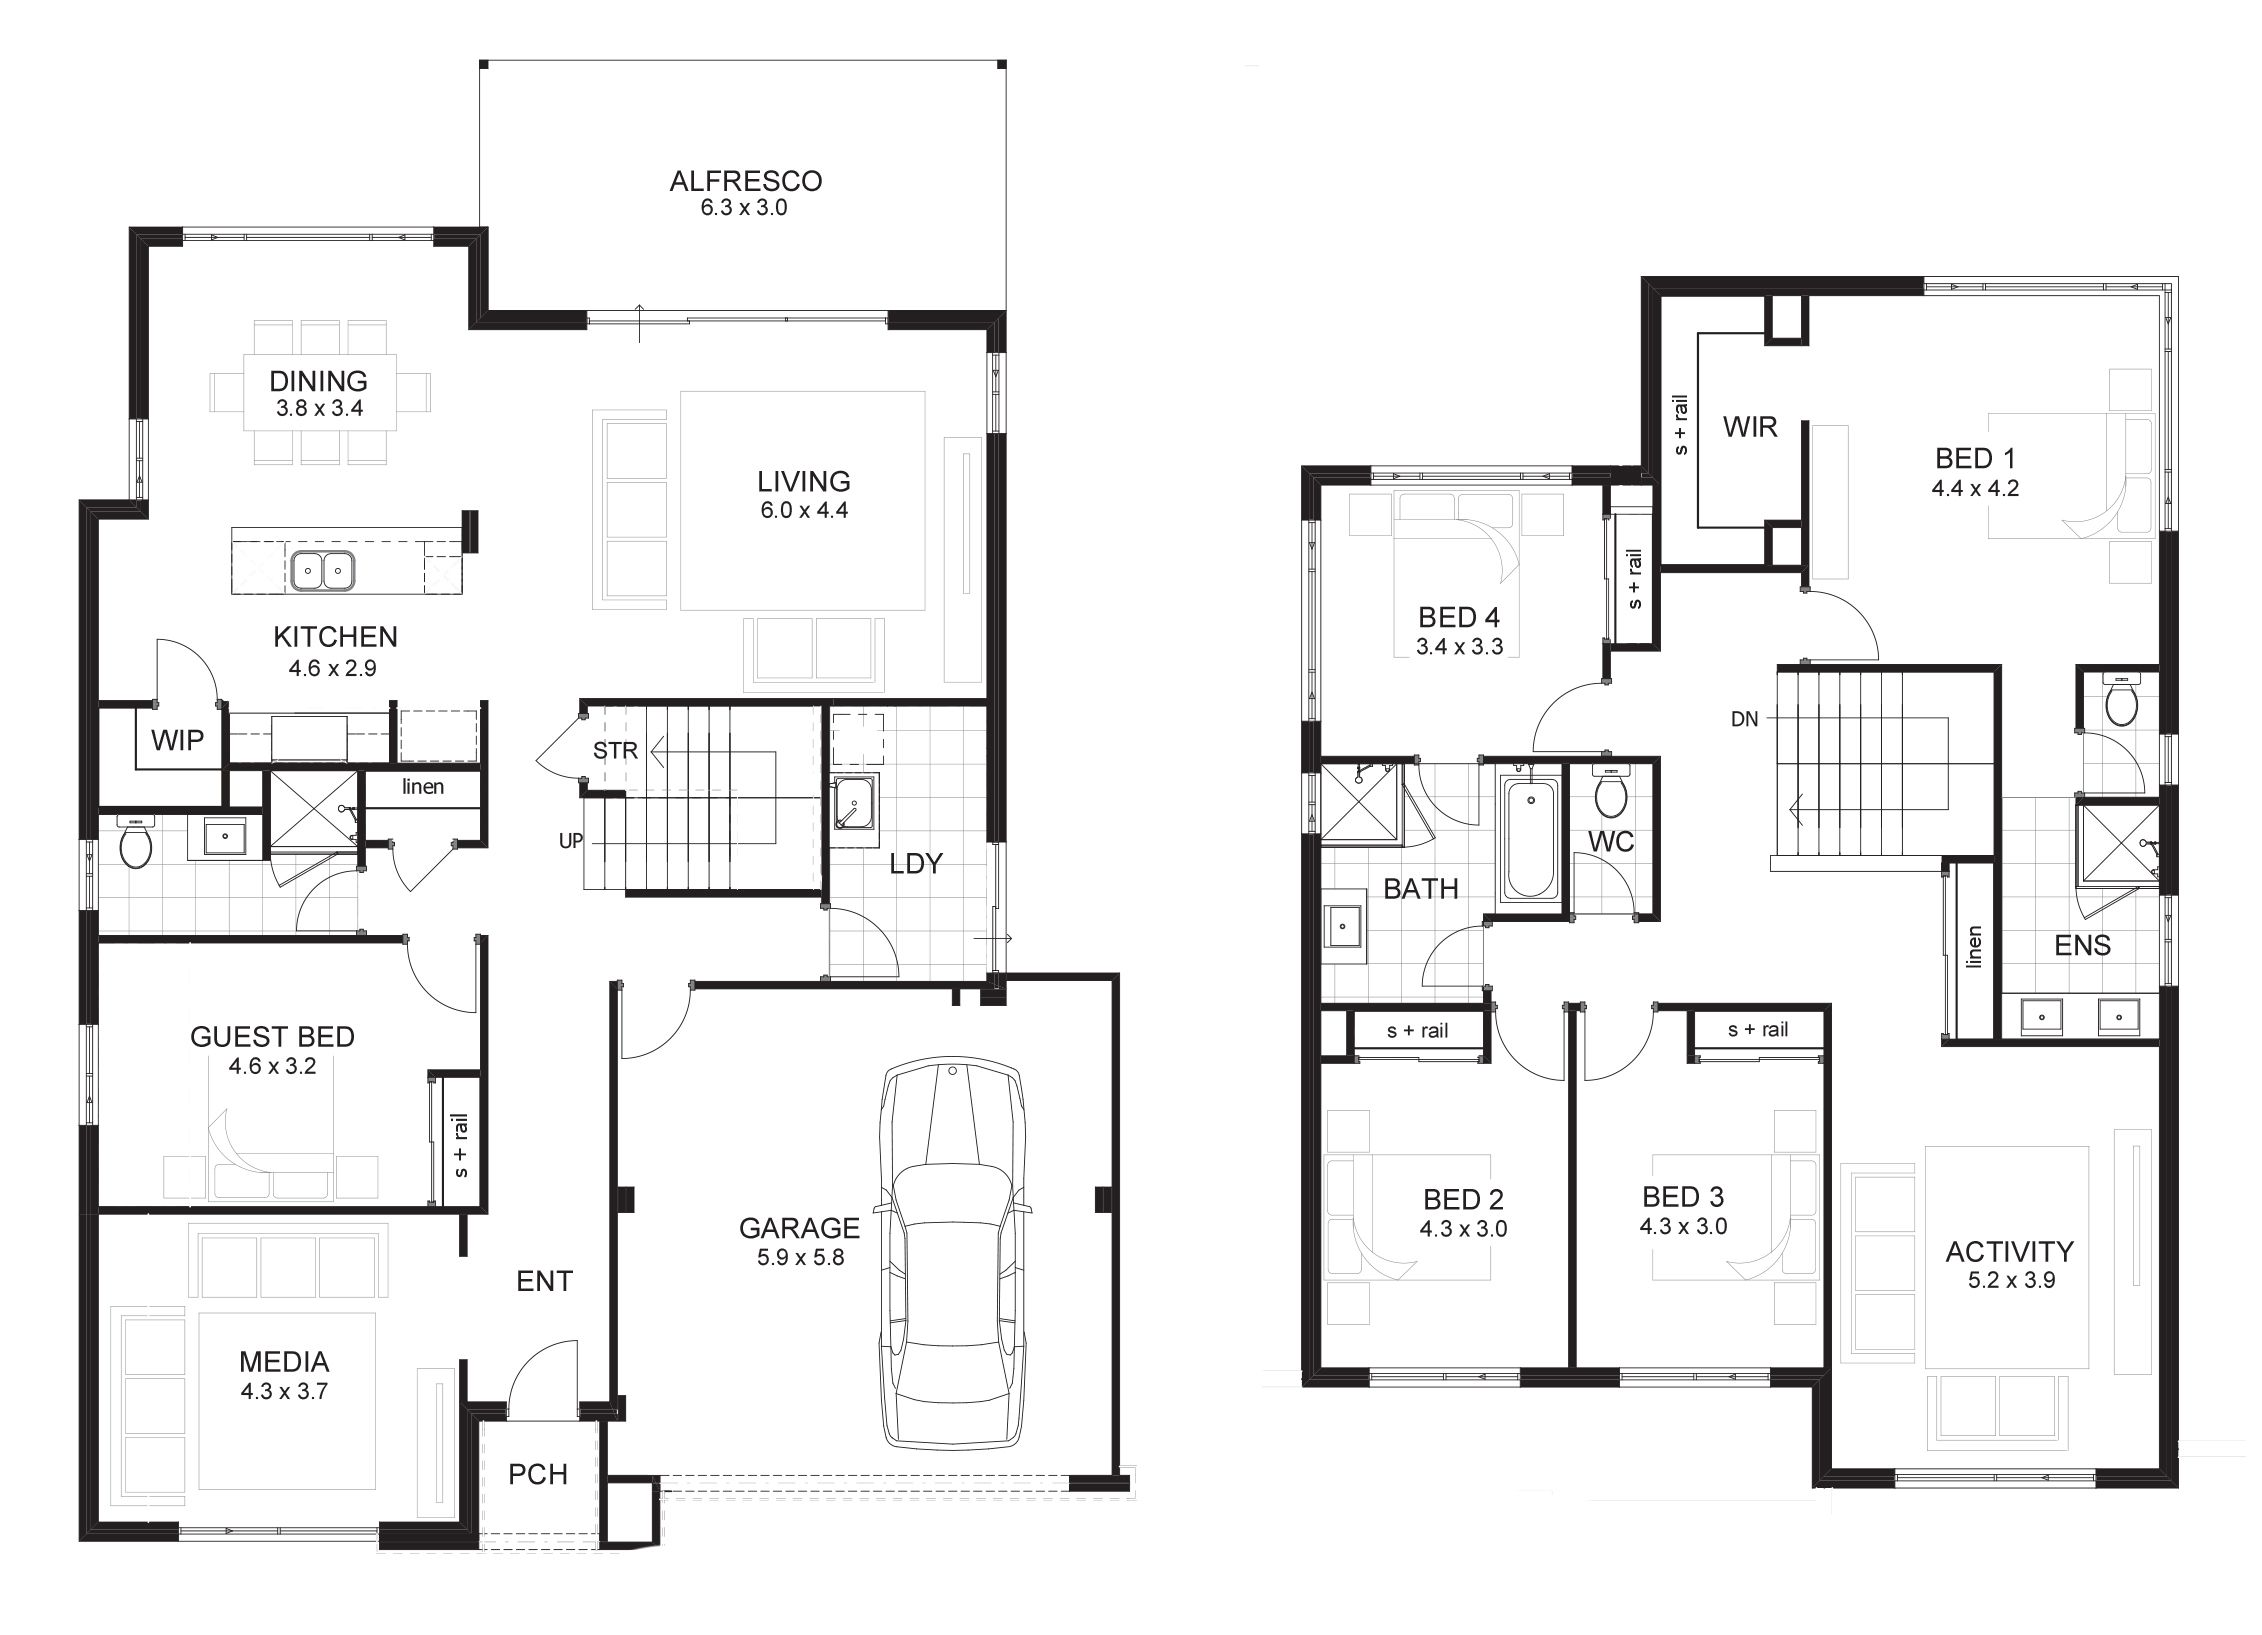 6 bedroom house plans perth pinterest for House plans with 6 bedrooms